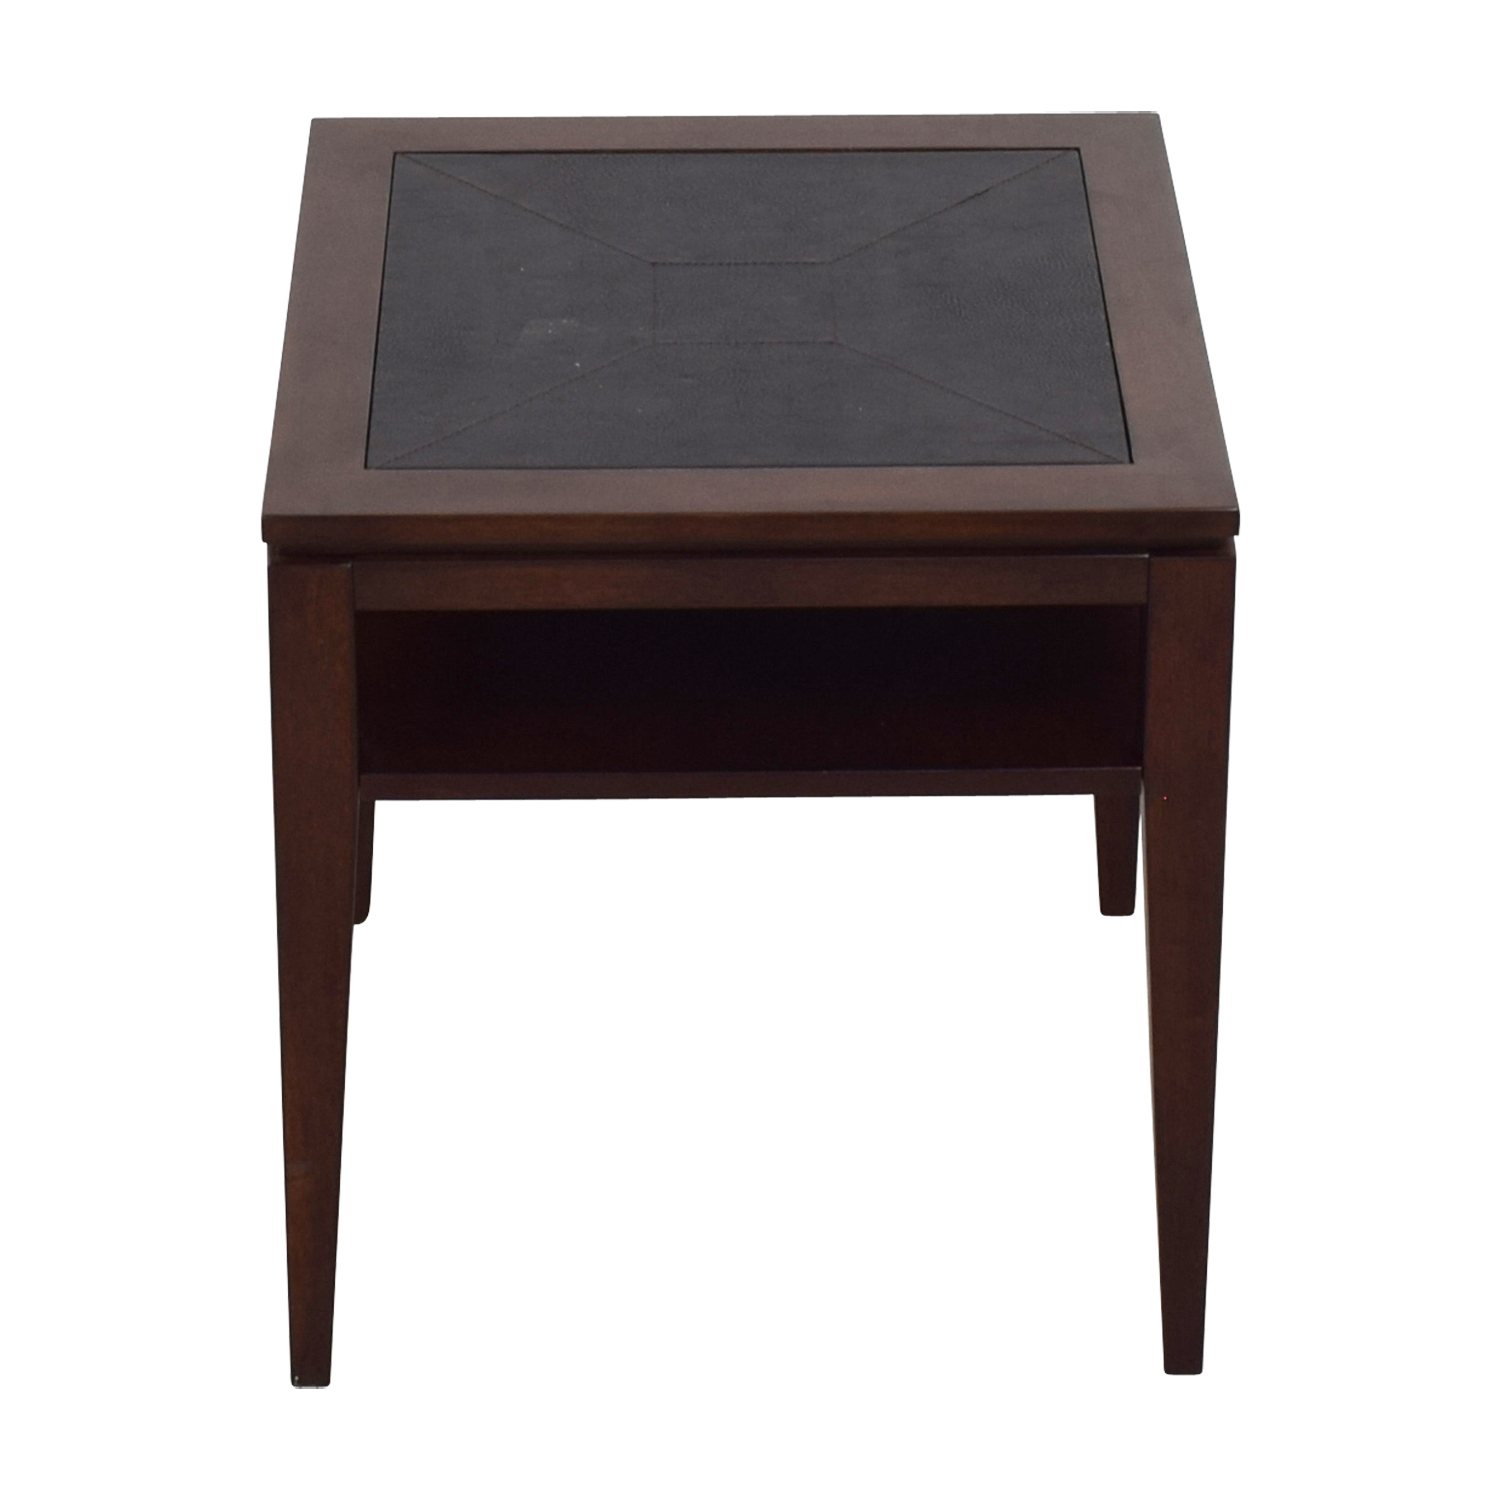 Raymour & Flanigan Raymour & Flanigan End Table Tables